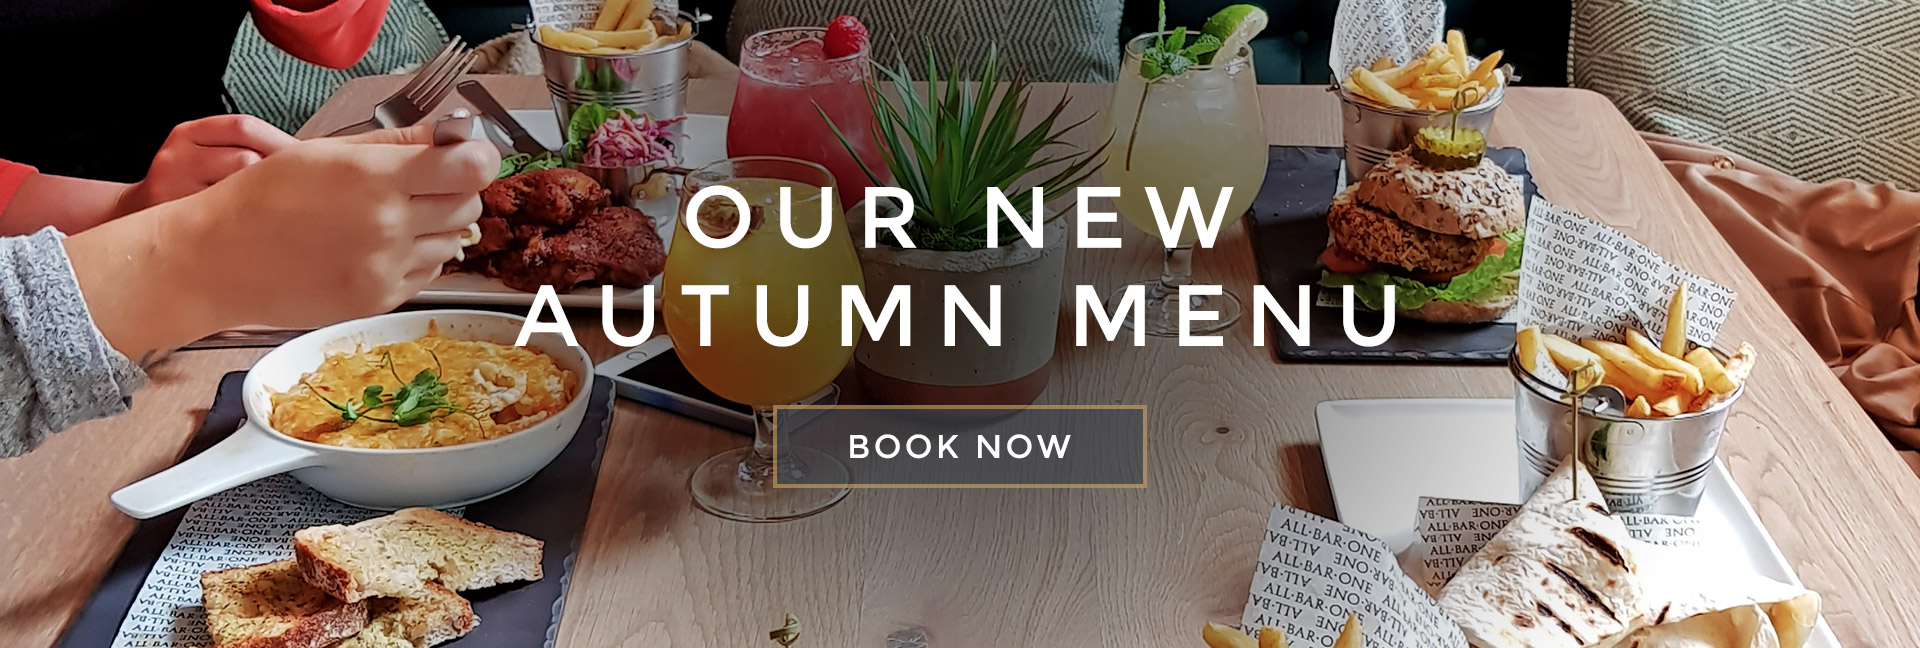 Our new Autumn menu at All Bar One Cannon Street - Book now